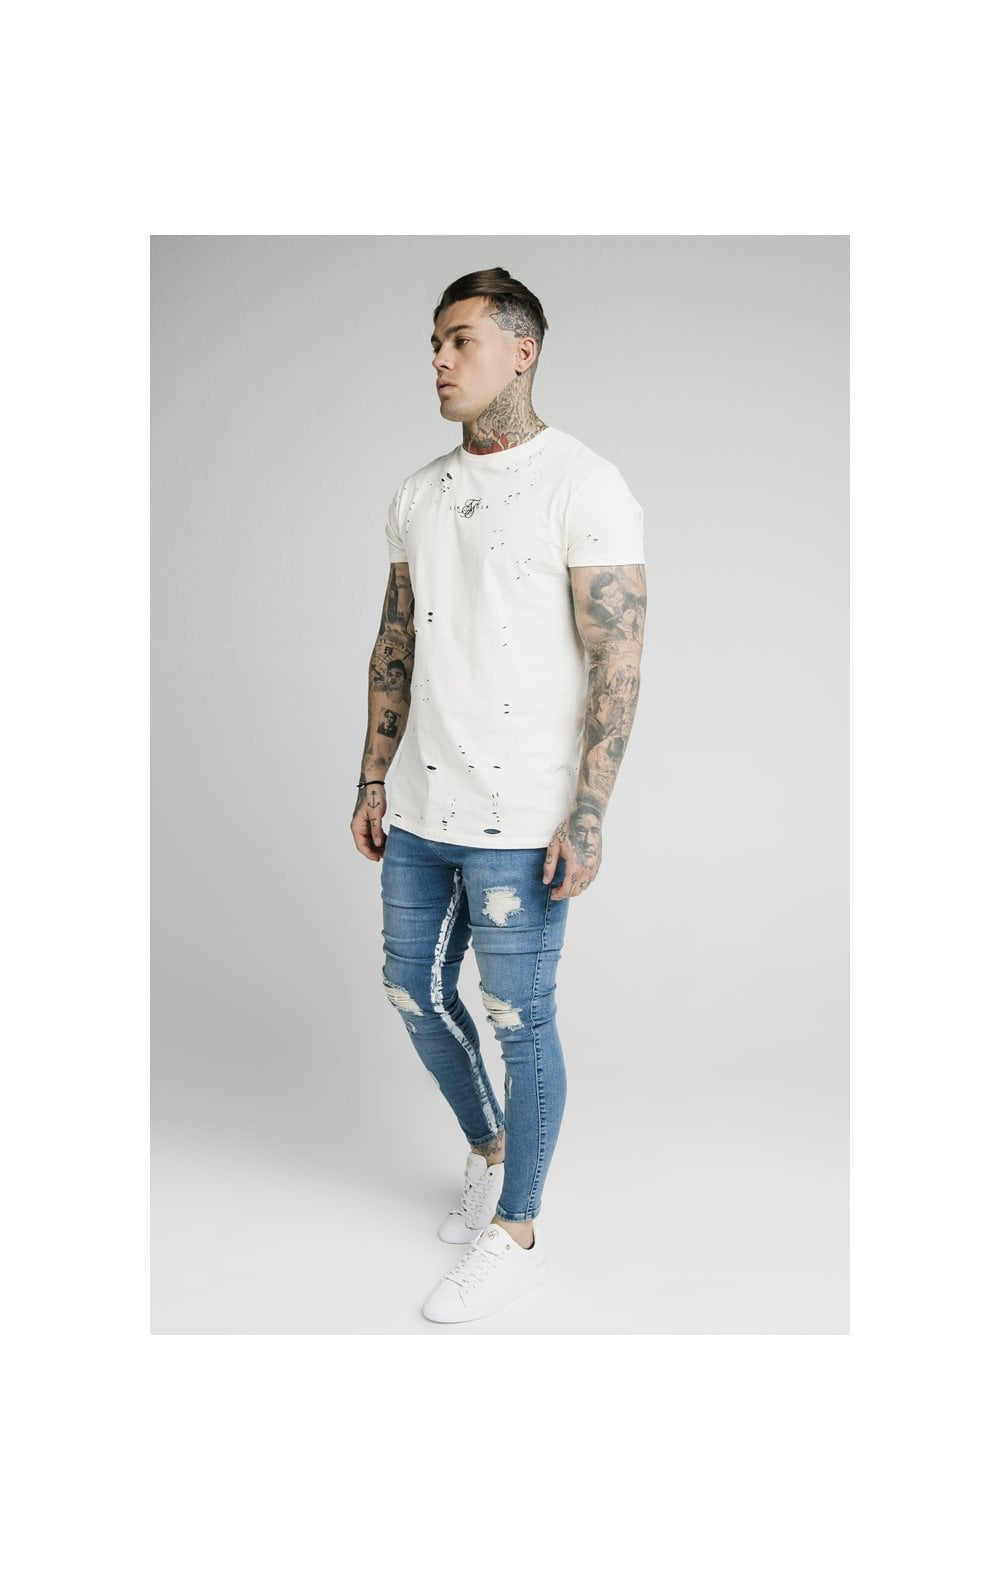 SikSilk Skinny Distressed Paint Stripe Denims - Midstone & White (3)